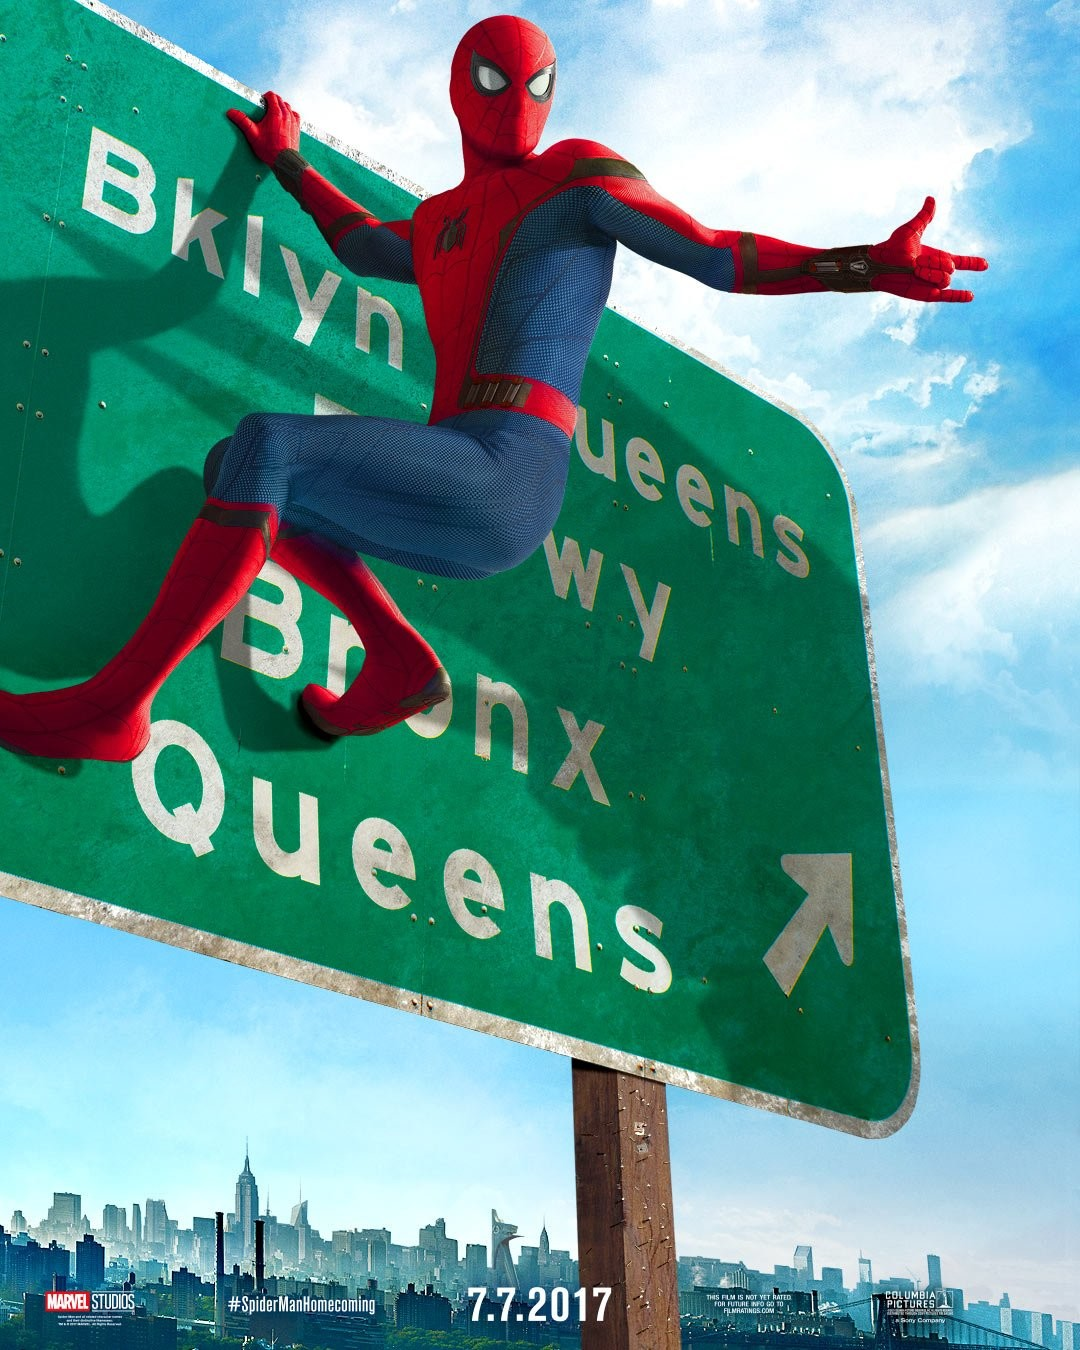 Foto de 'Spider-Man: Homecoming', primeros carteles (3/3)